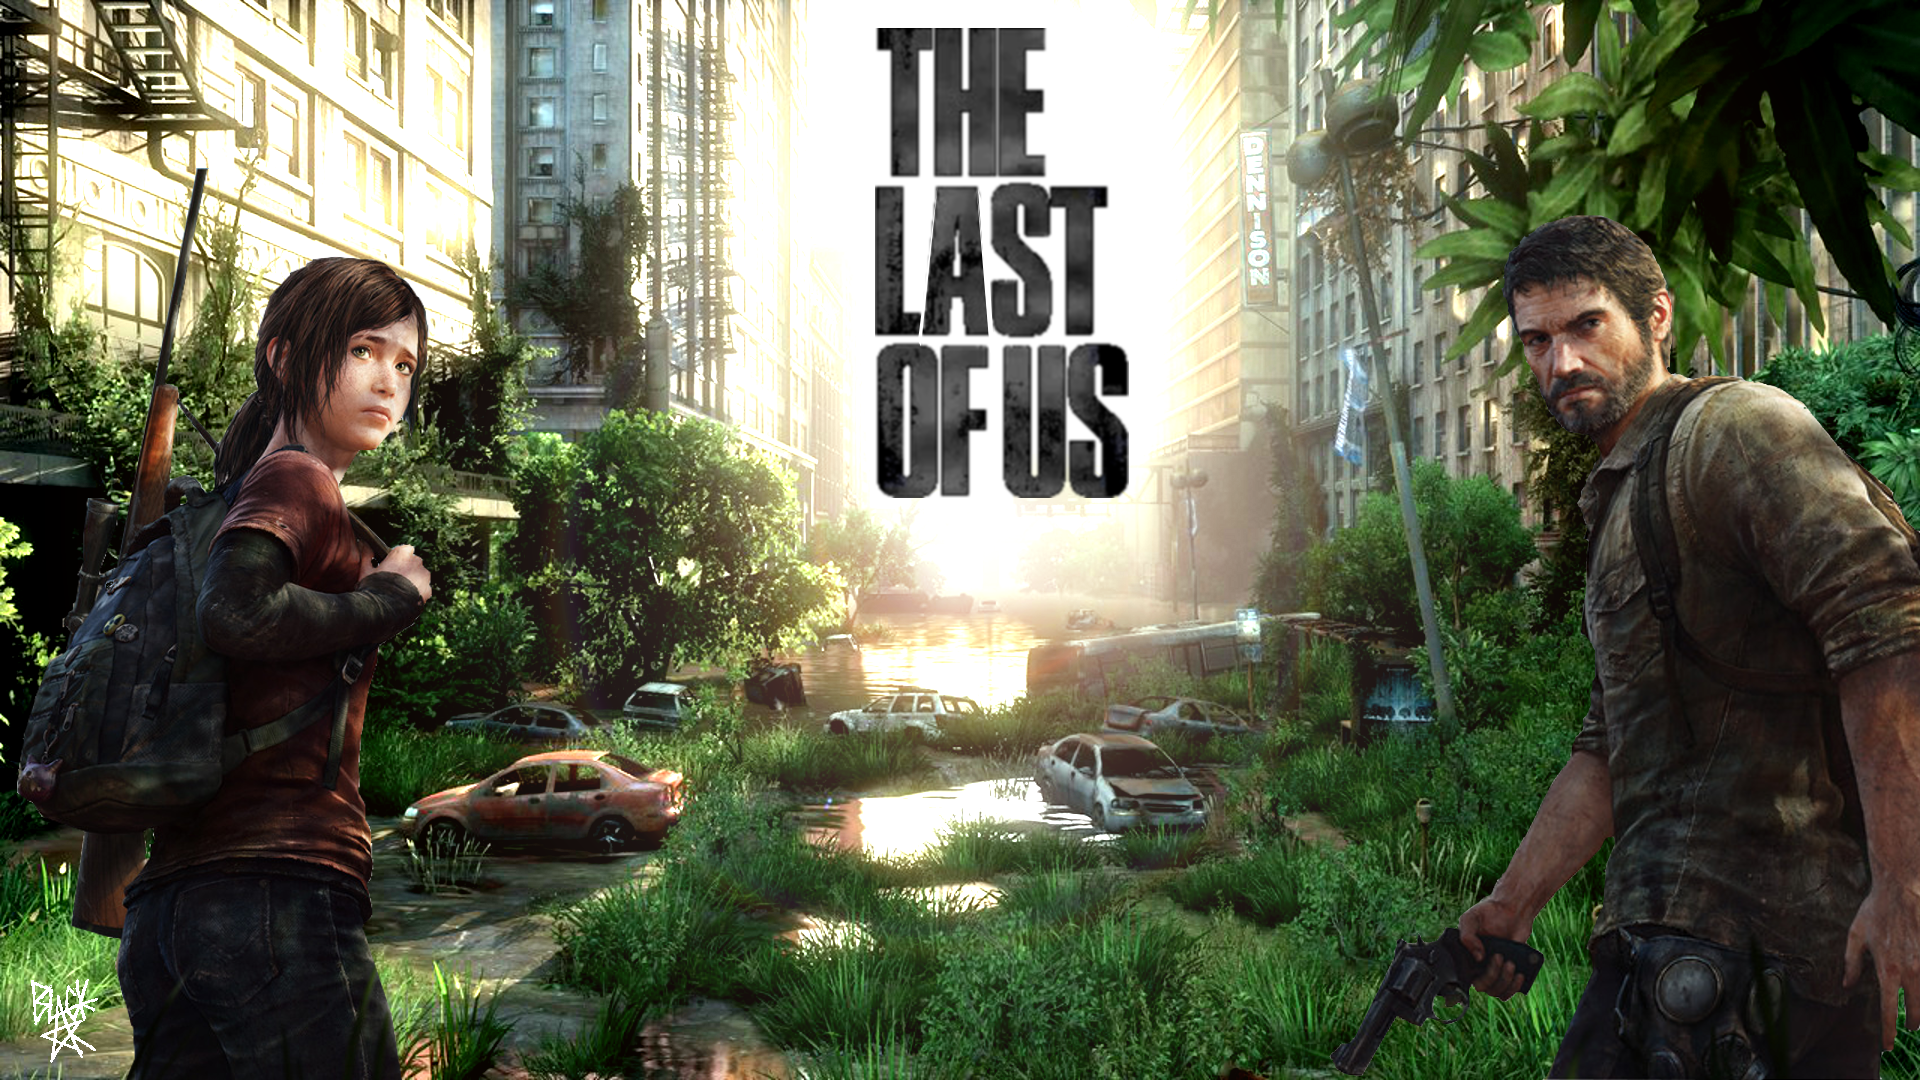 ¿The last of us movie a la vuelta de la esquina?